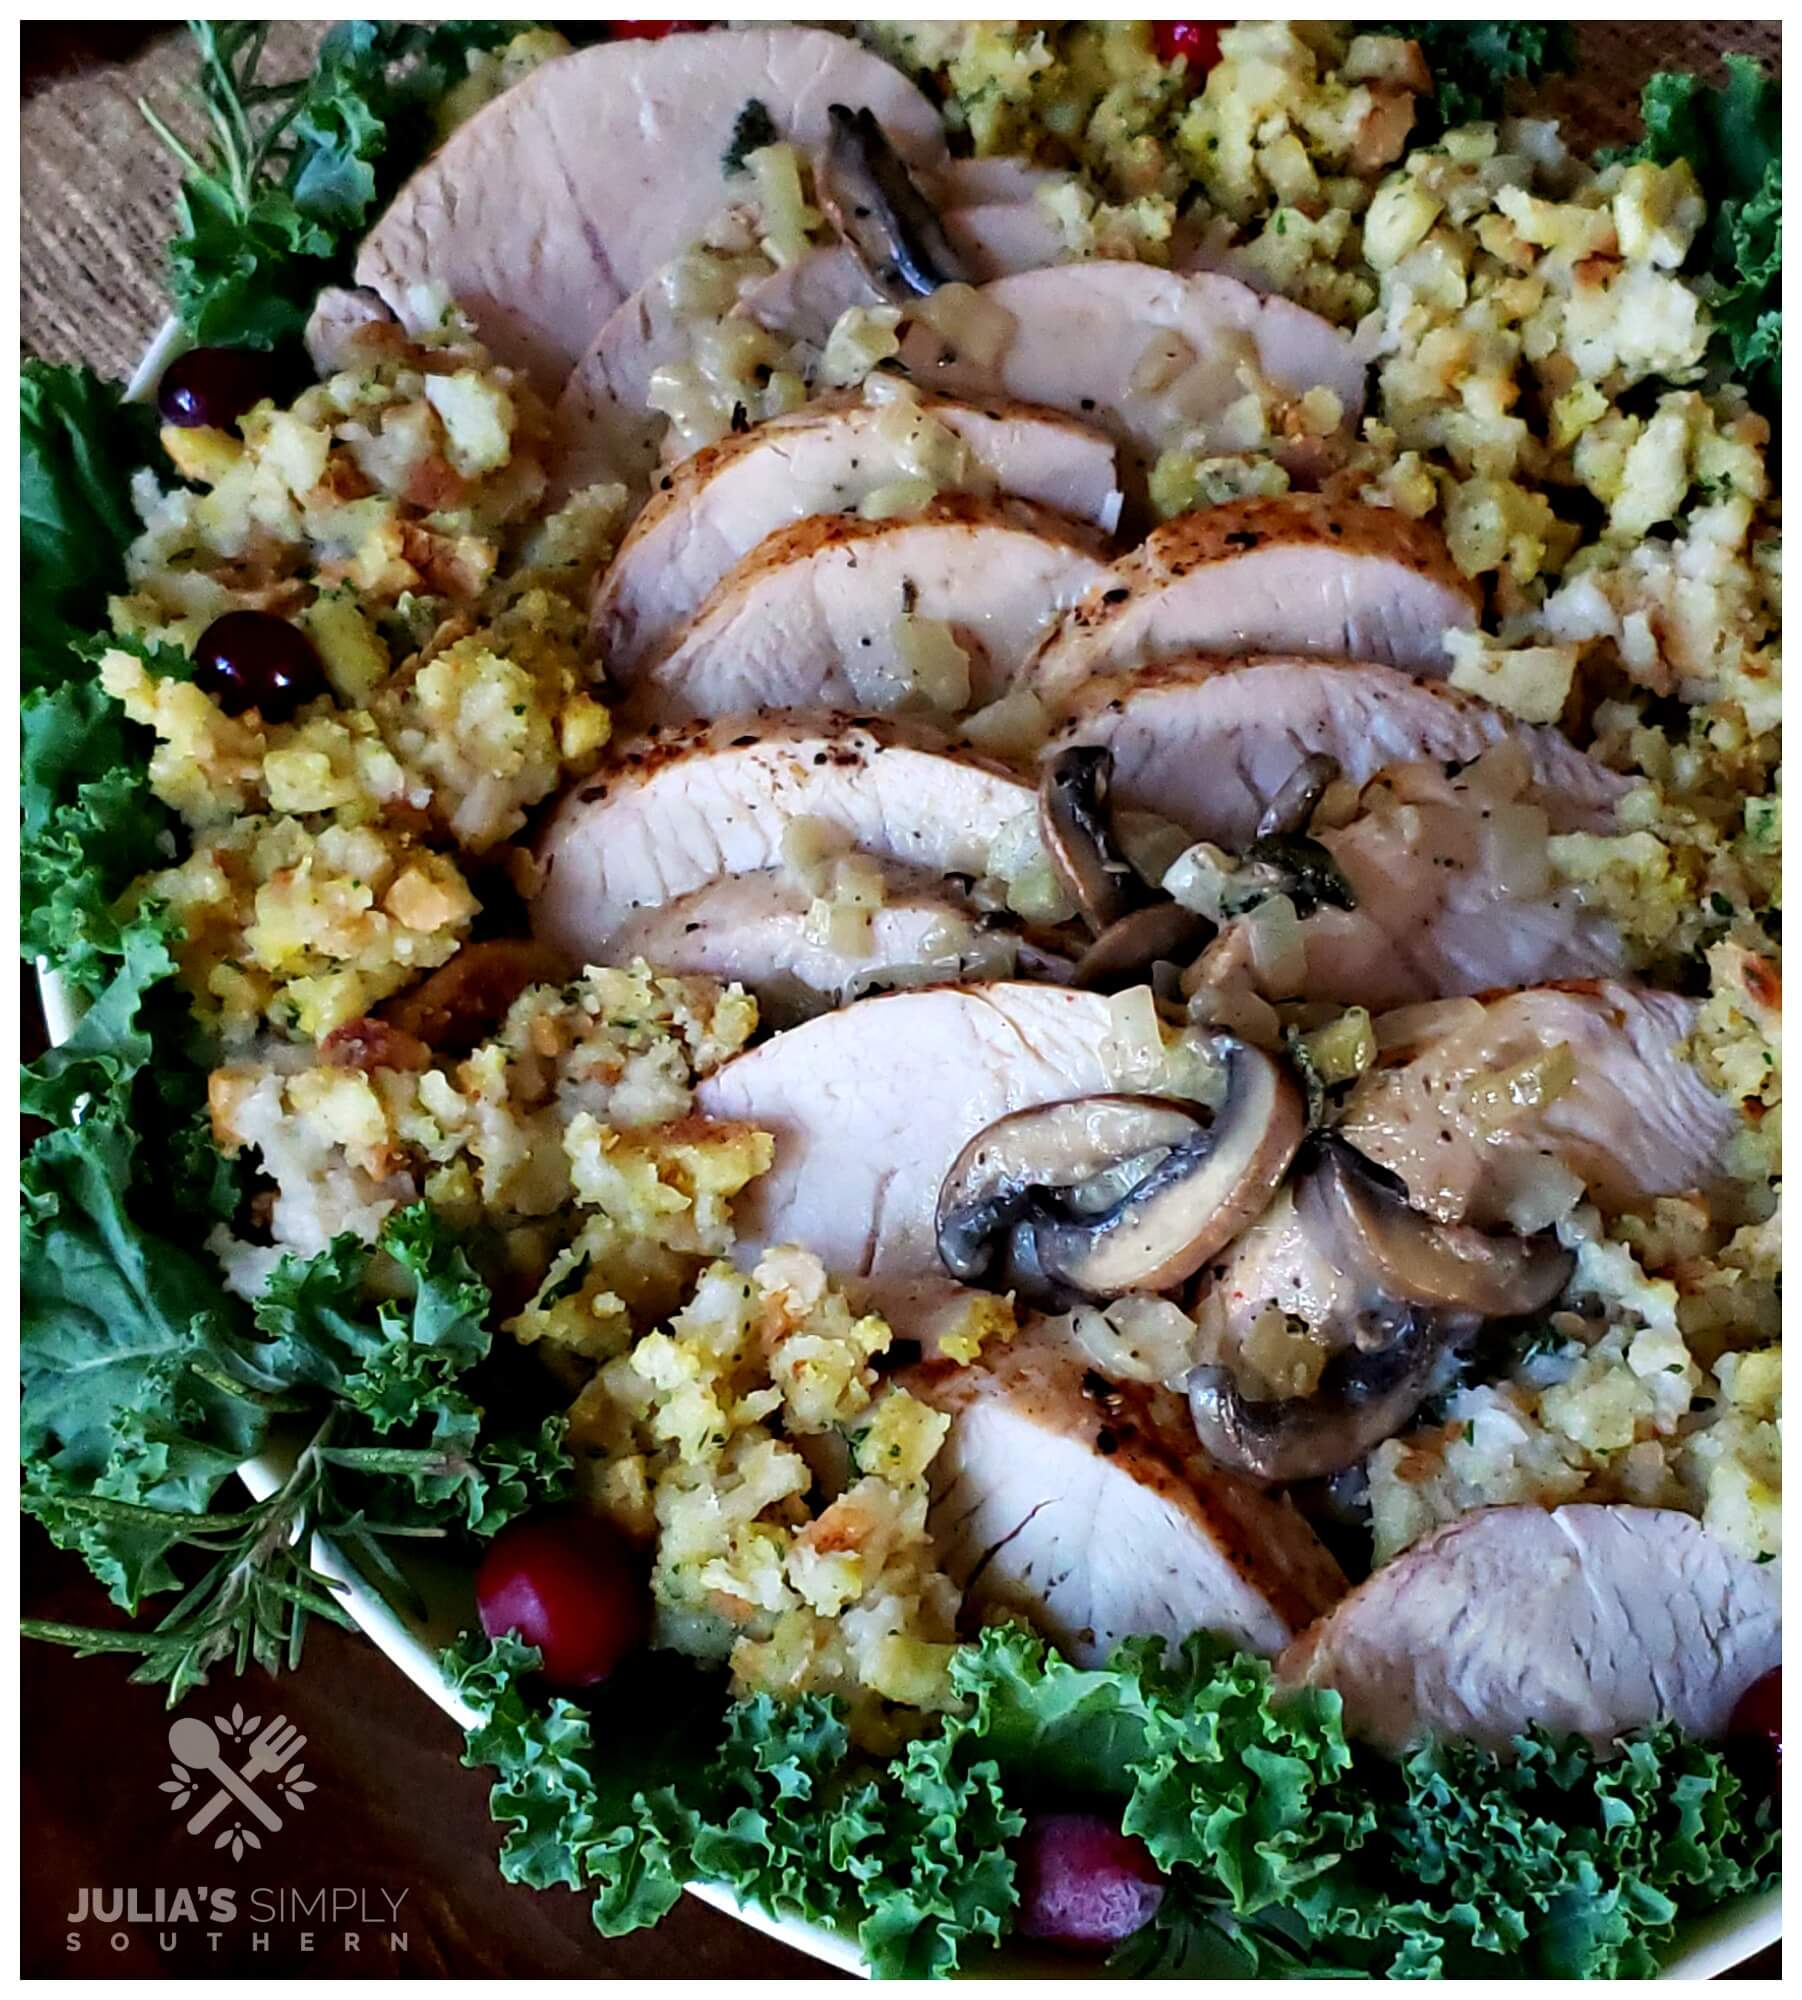 Platter with turkey and stuffing garnished with greenery and cranberries